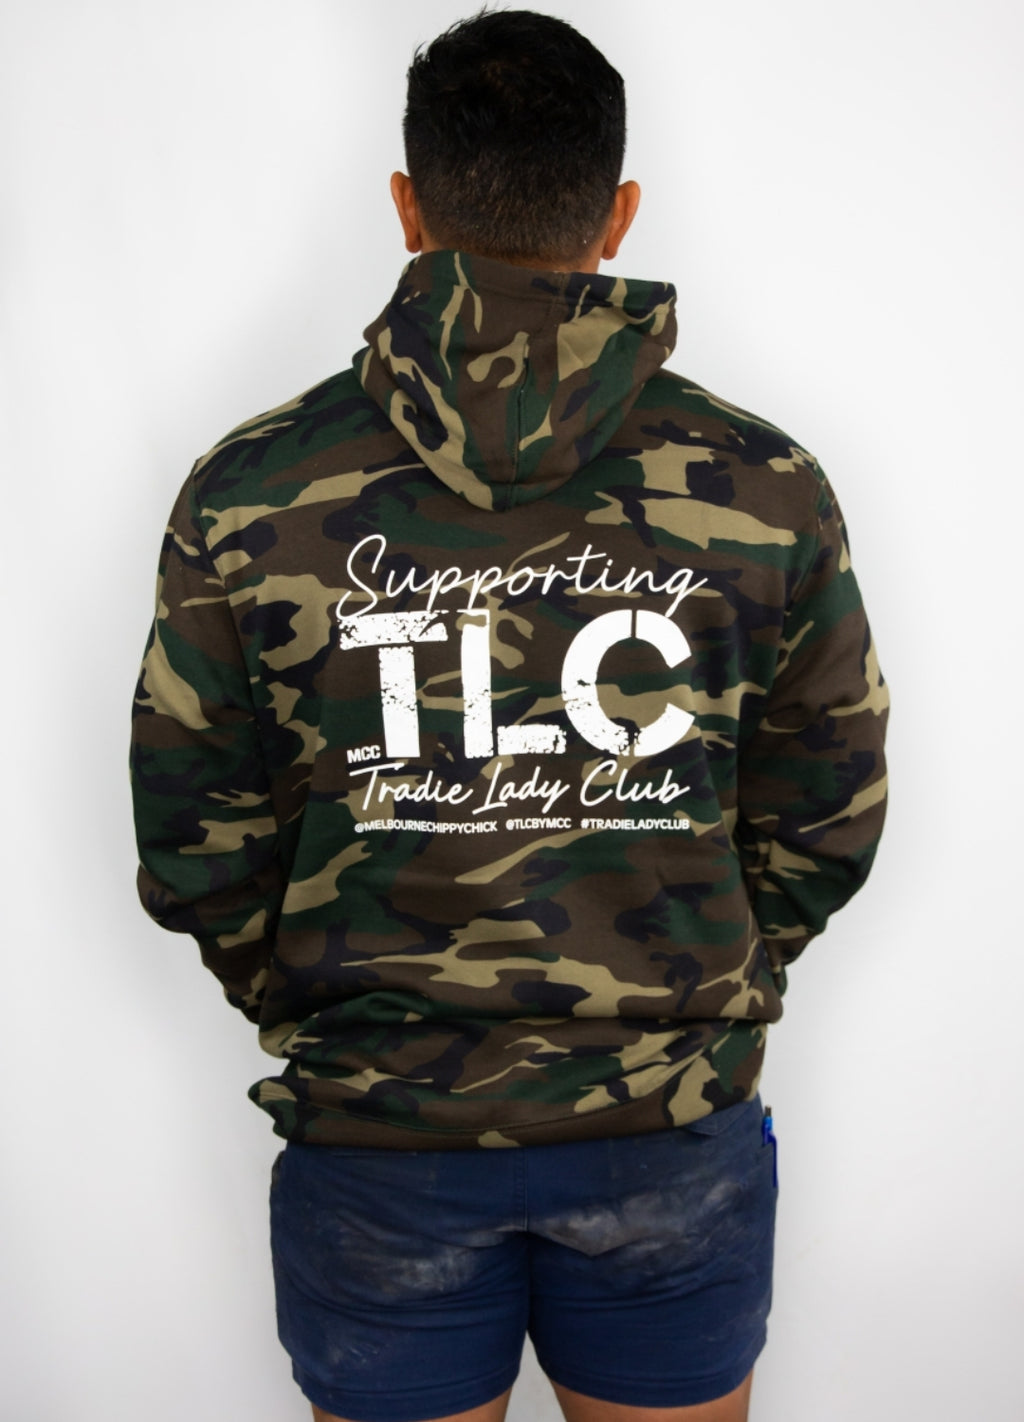 TLC SUPPORTER HOODIE